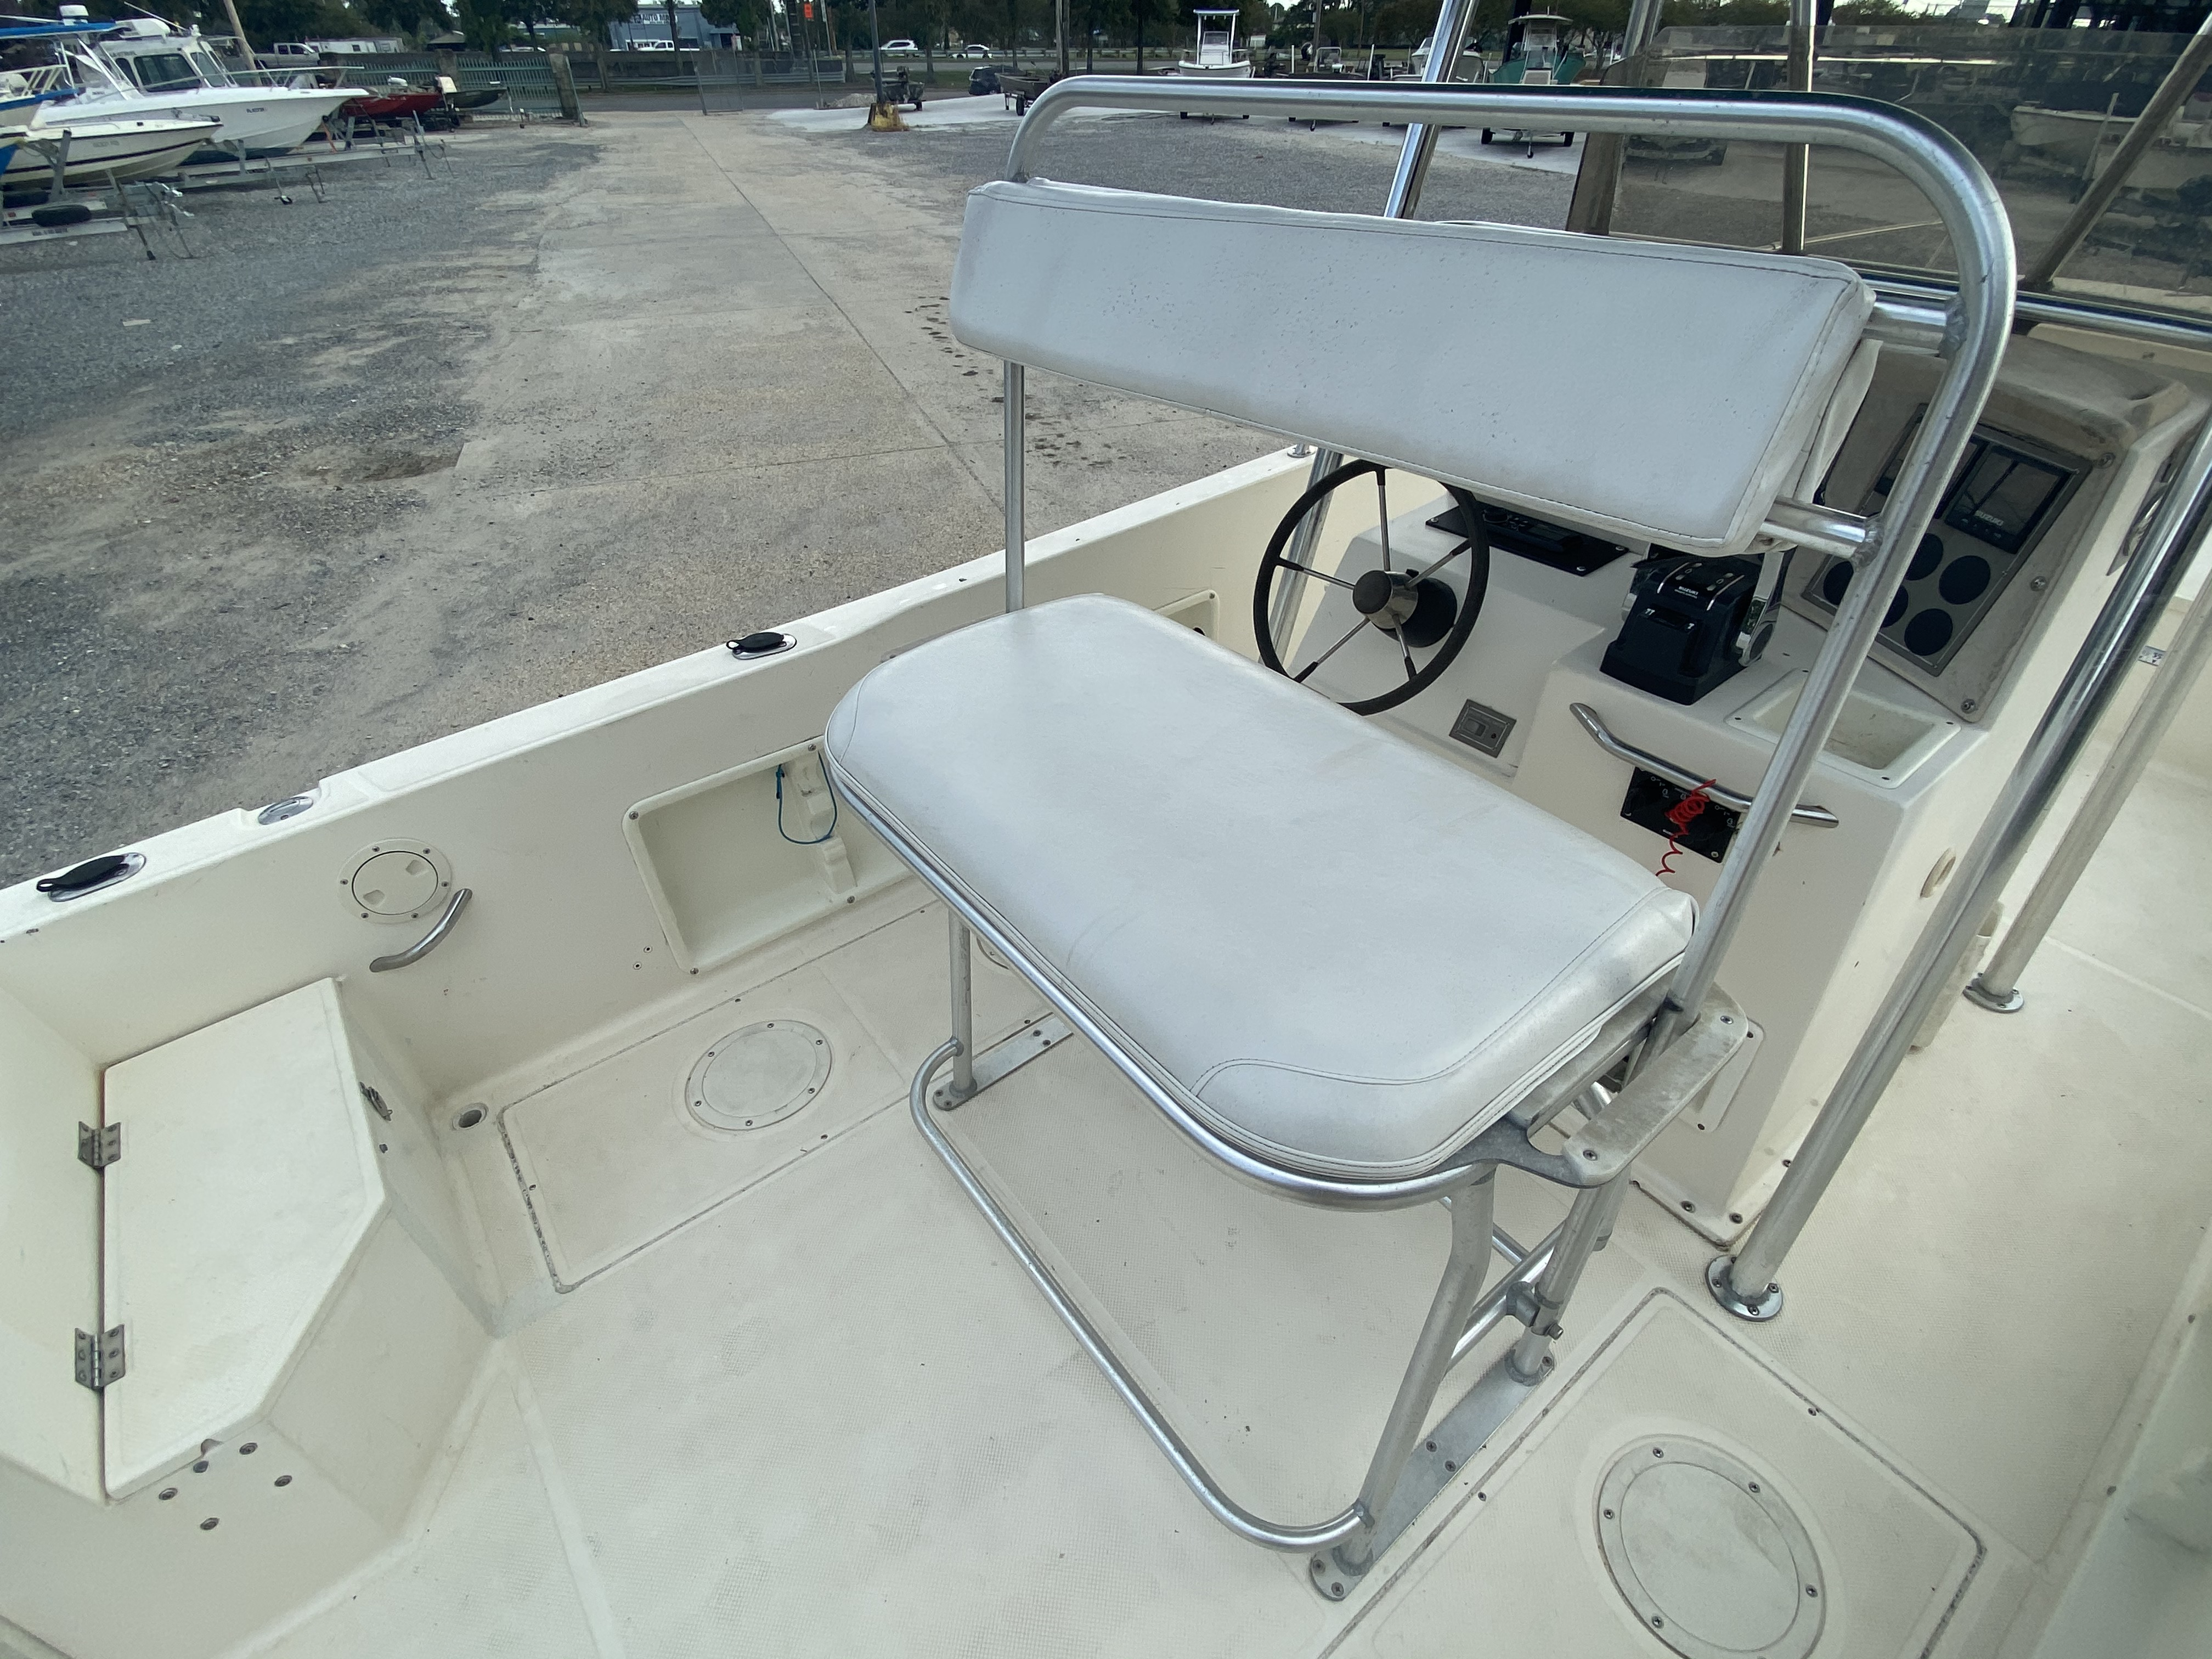 1996 Sea Cat boat for sale, model of the boat is 215 SL1 & Image # 12 of 25